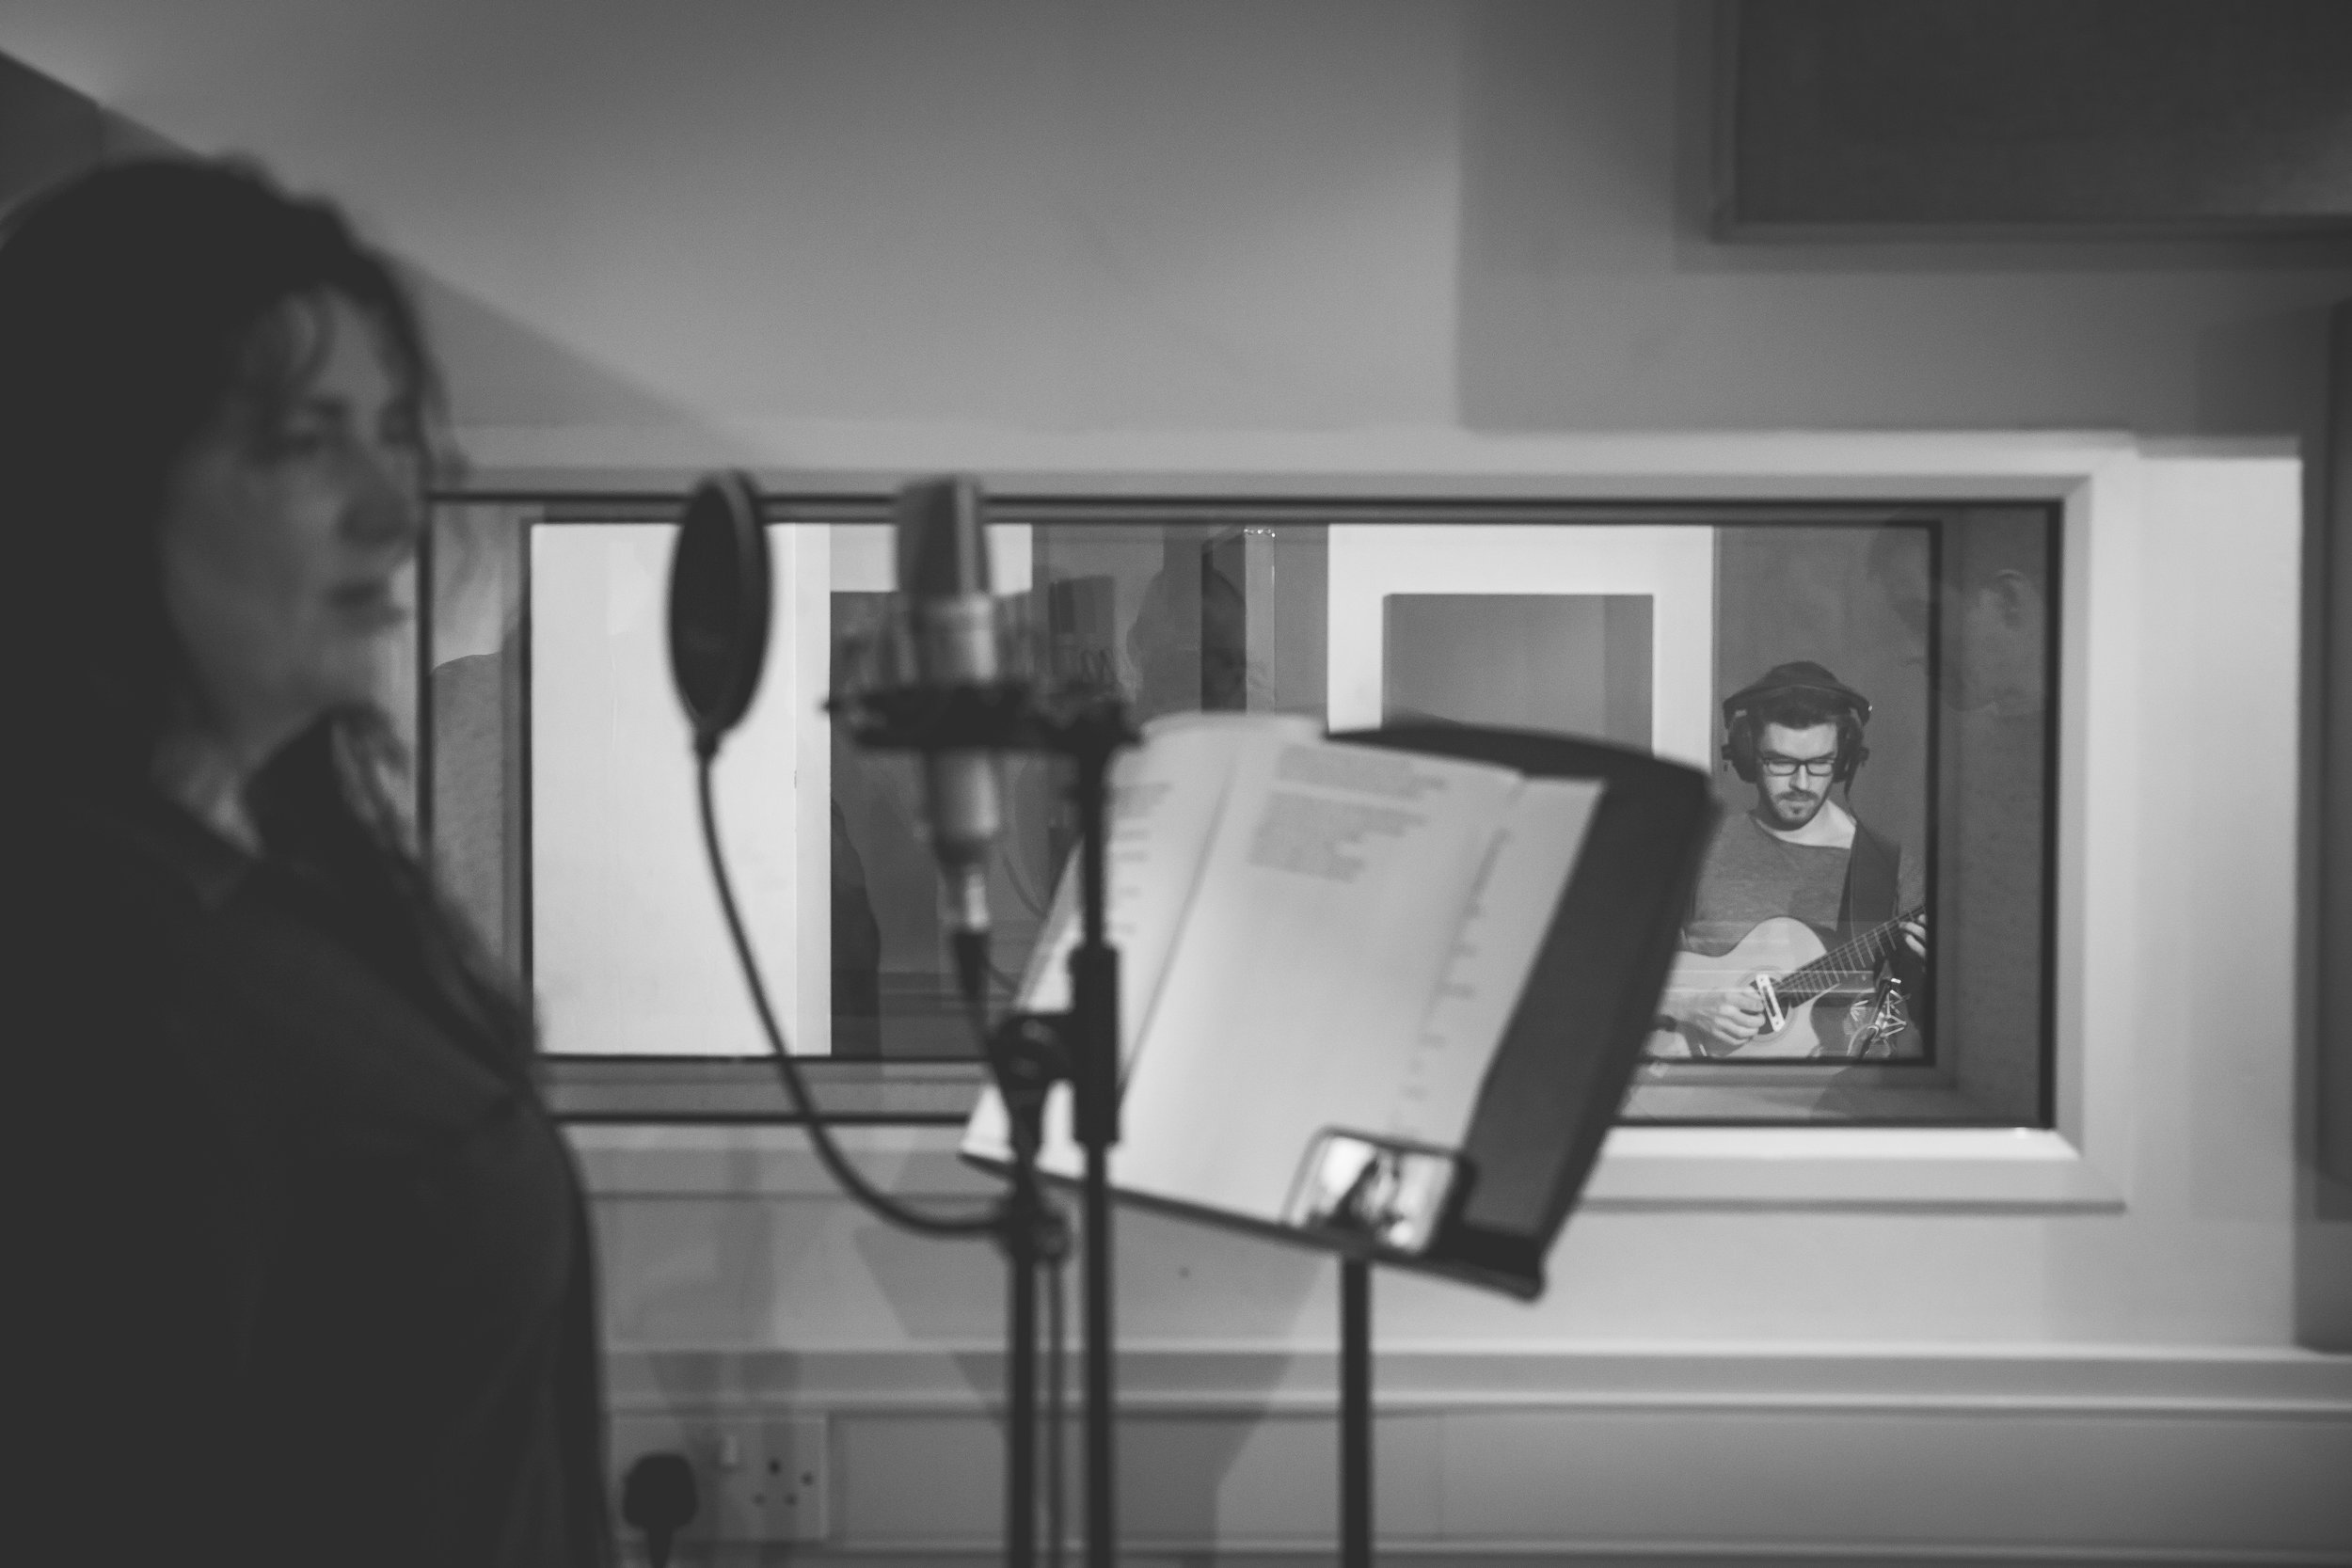 Steve Banks recording 'What We're Made Of' by Sara Colman